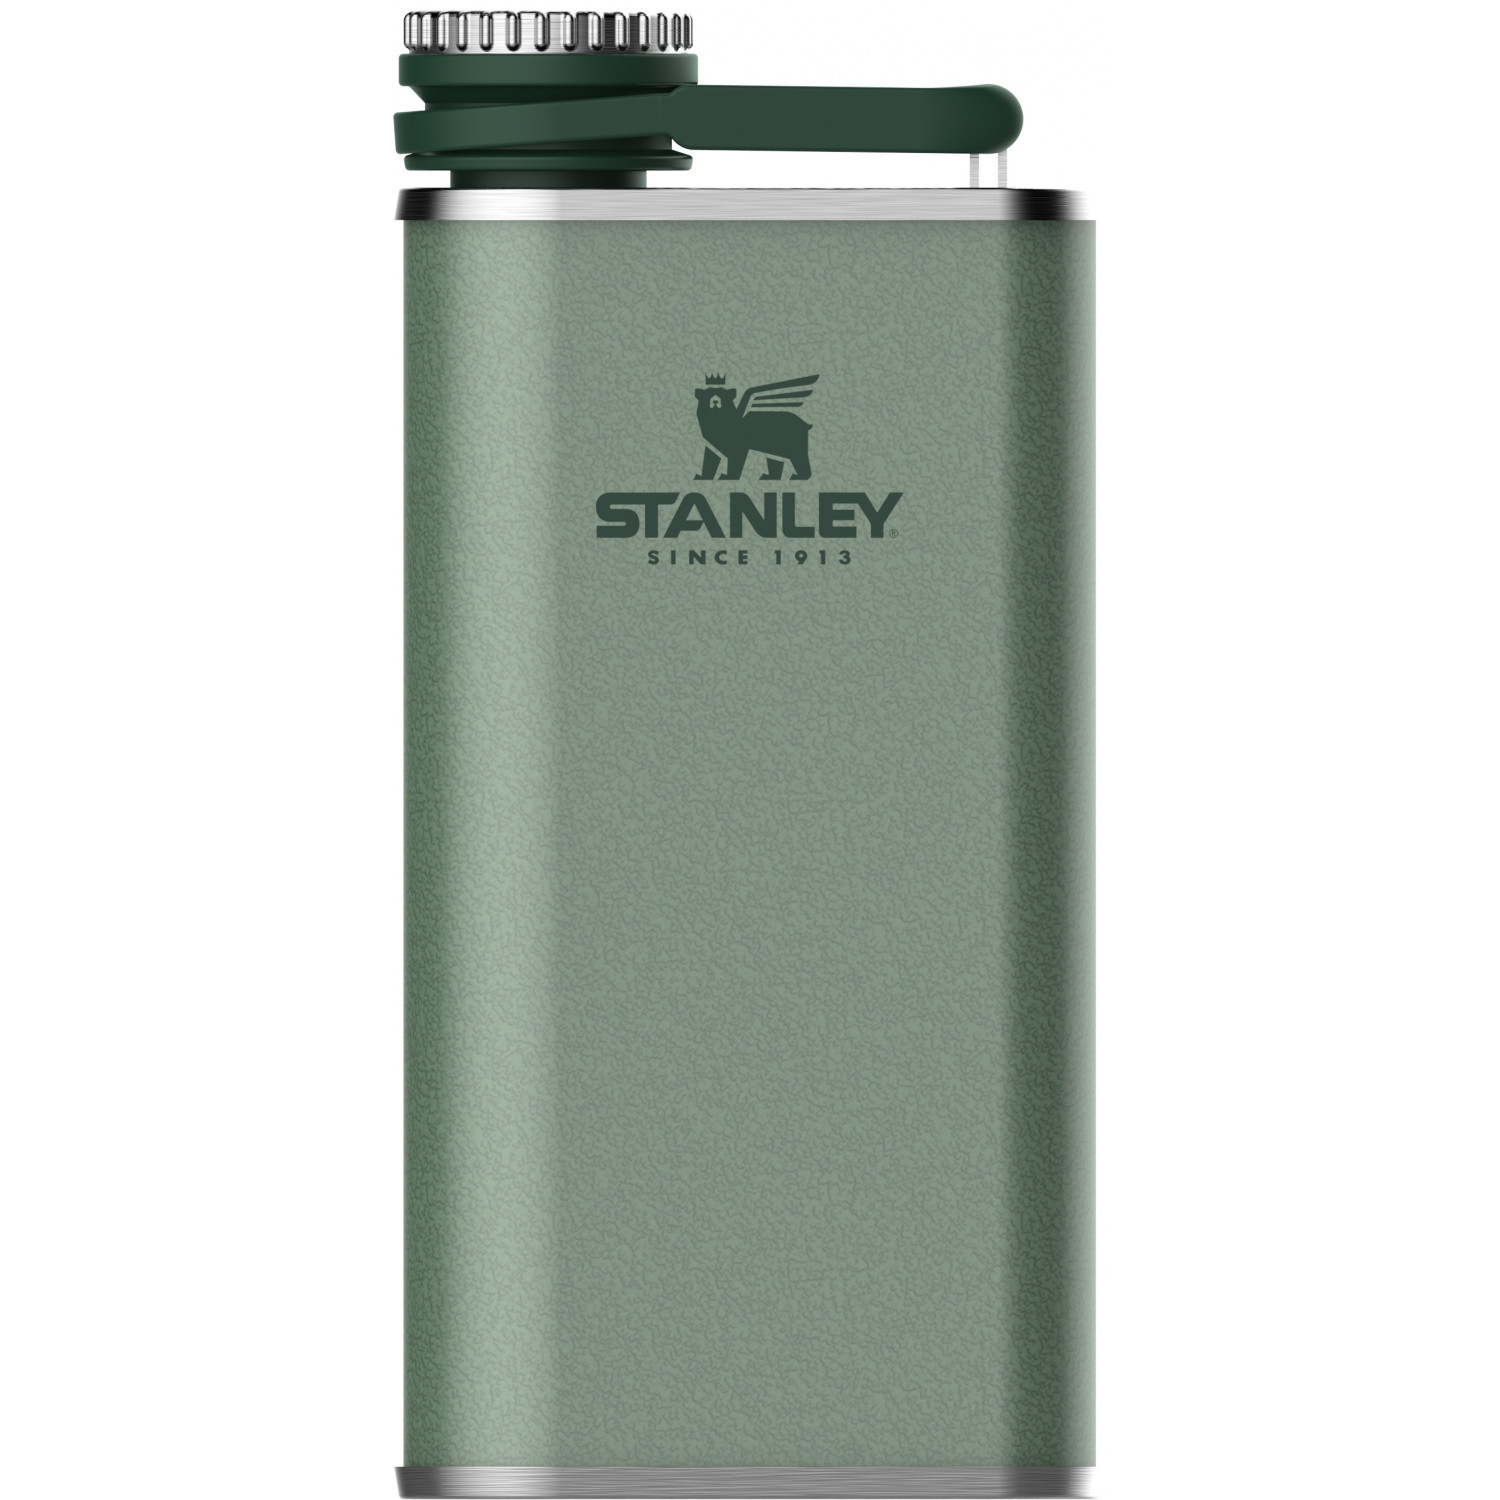 Фляга Stanley The Easy-Fill Wide Mouth Flask 0,23 л (10-00837-126 Зеленый)